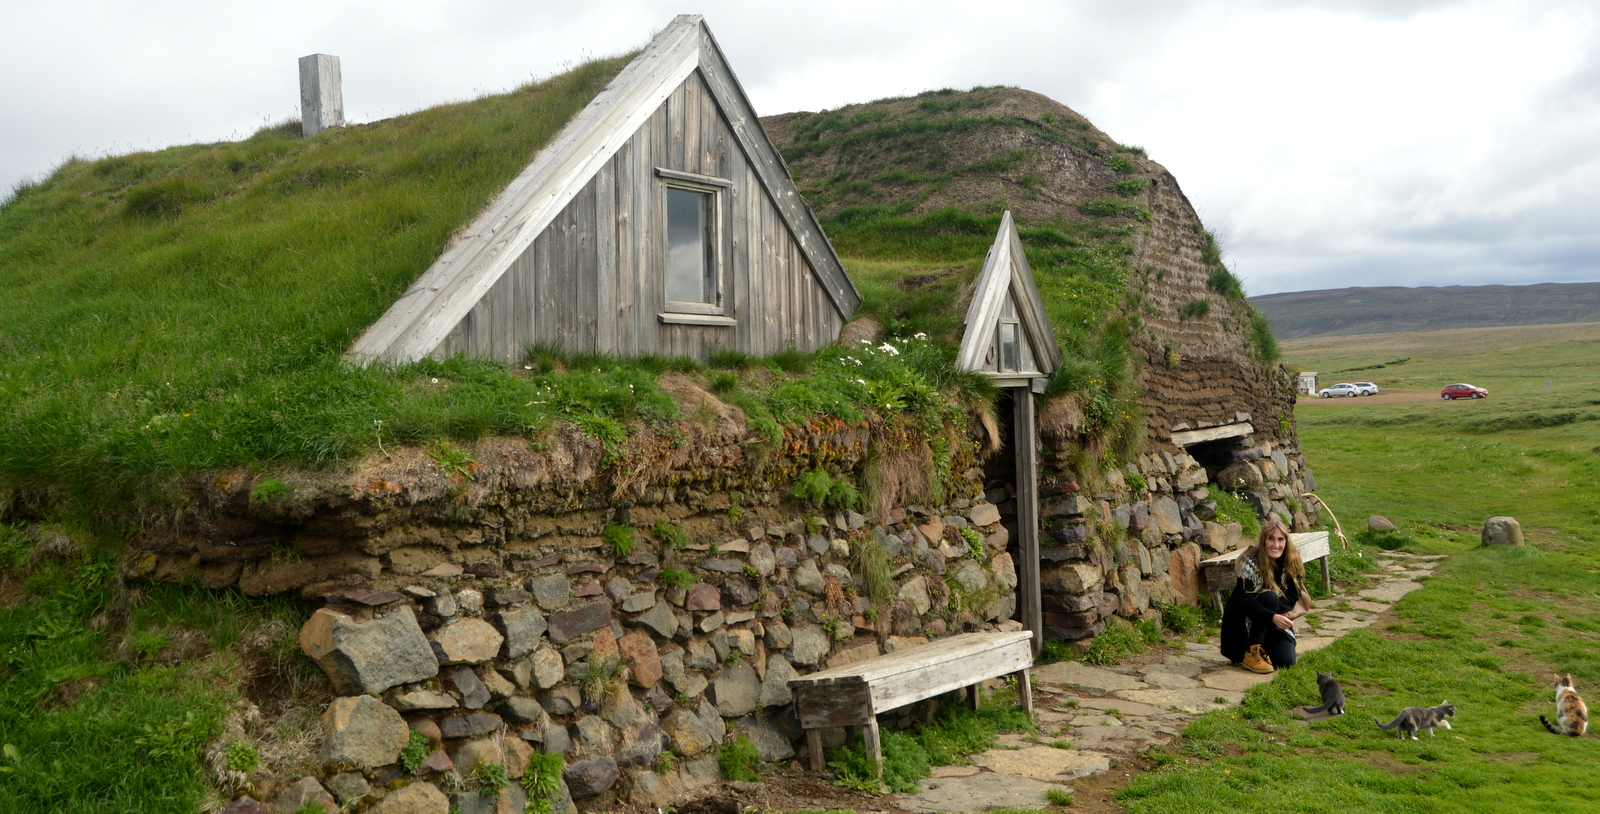 Icelandic Turf Houses also Maisons De Gazon Traditionnelles Islande as well Kerlingarfjoll furthermore Vertical Grass Art Architecture further Stock Photo Hofskirkja Church Eastern Iceland 74327931. on icelandic turf house